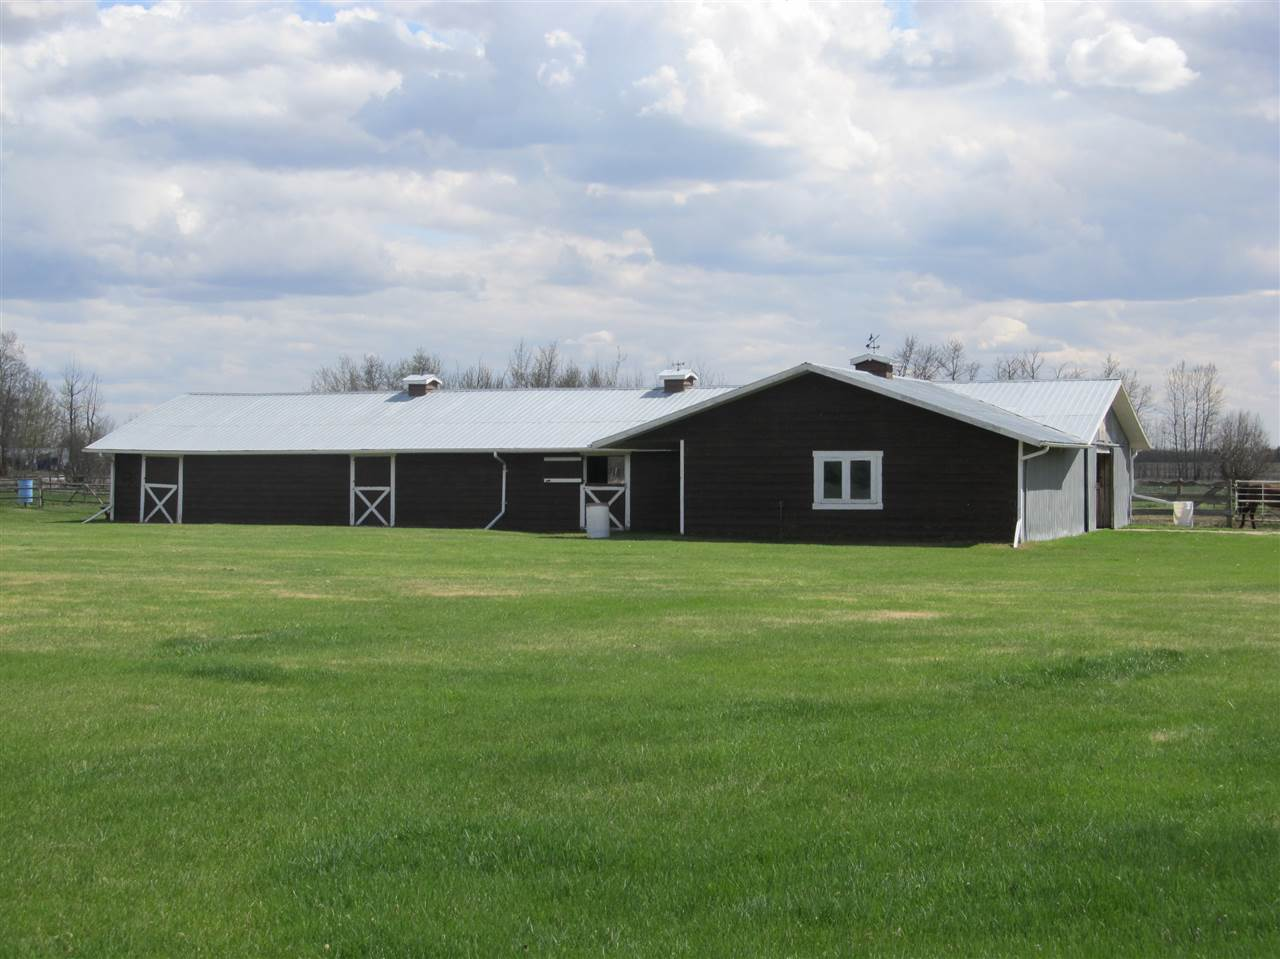 Photo 20: 25308 Twp Rd 570: Rural Sturgeon County House for sale : MLS(r) # E4063269